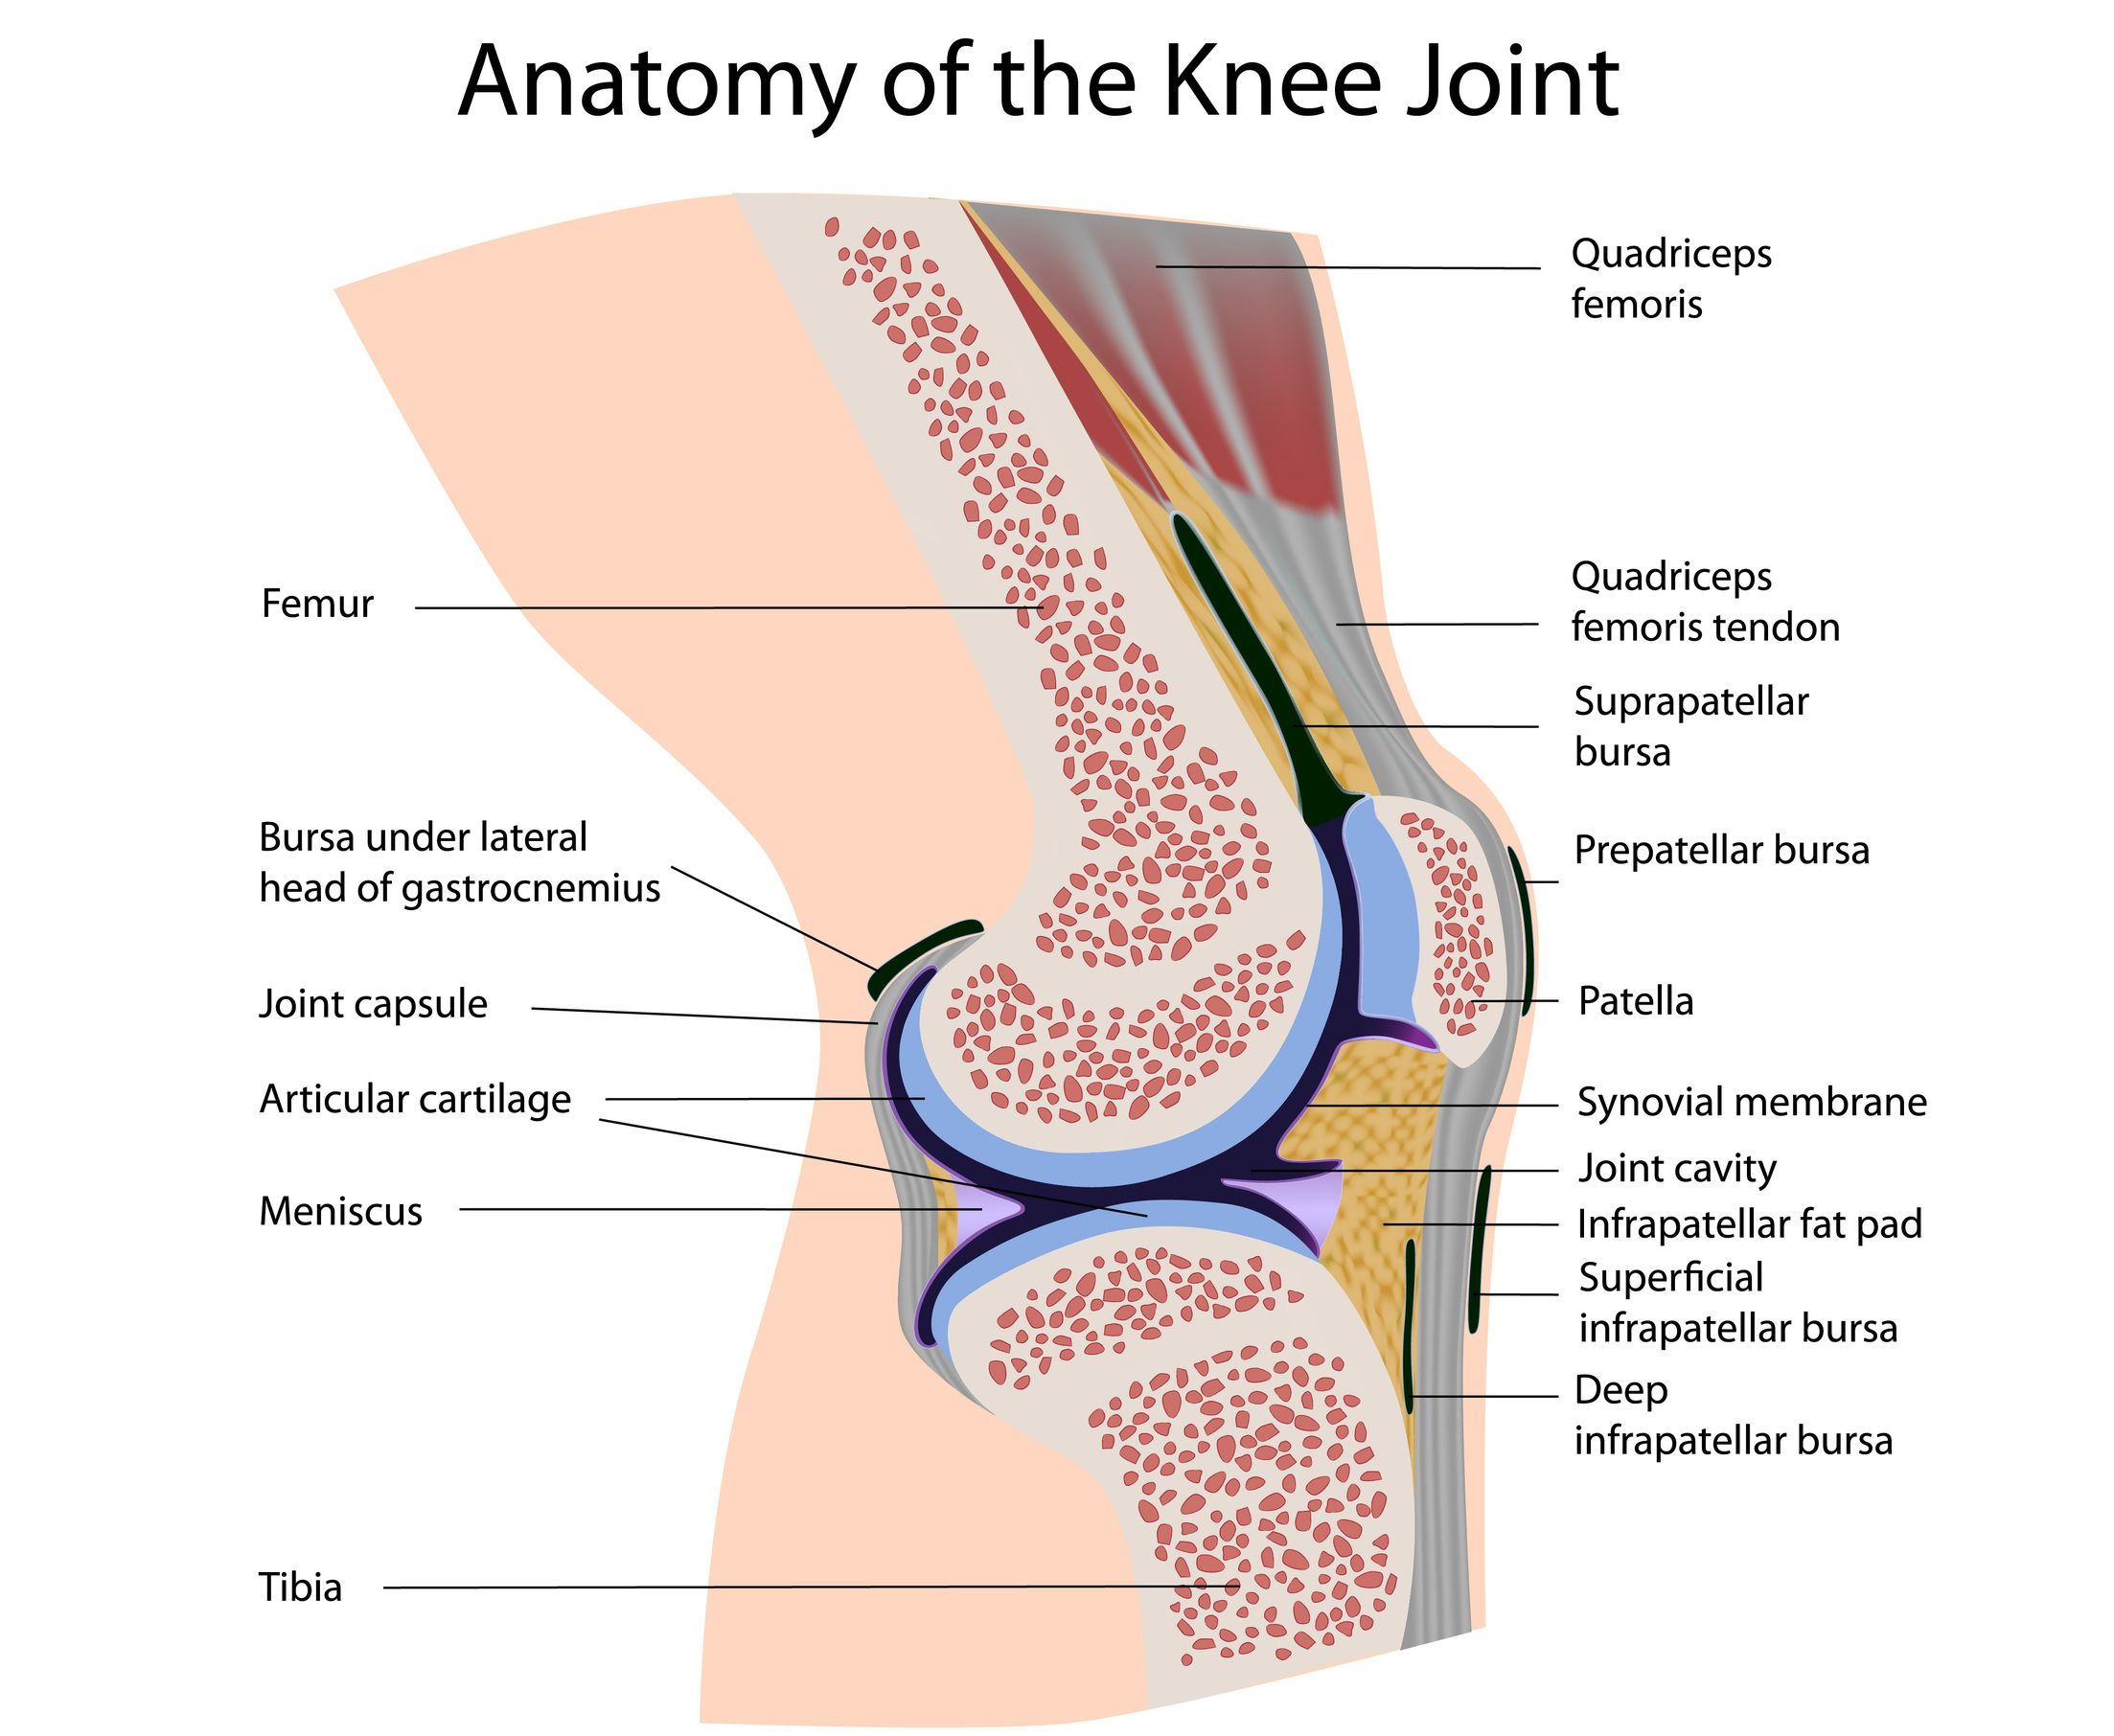 small resolution of another important part of the knee anatomy is the muscles there are many muscles surrounding the knee joint but the biggest are the thigh muscles or the